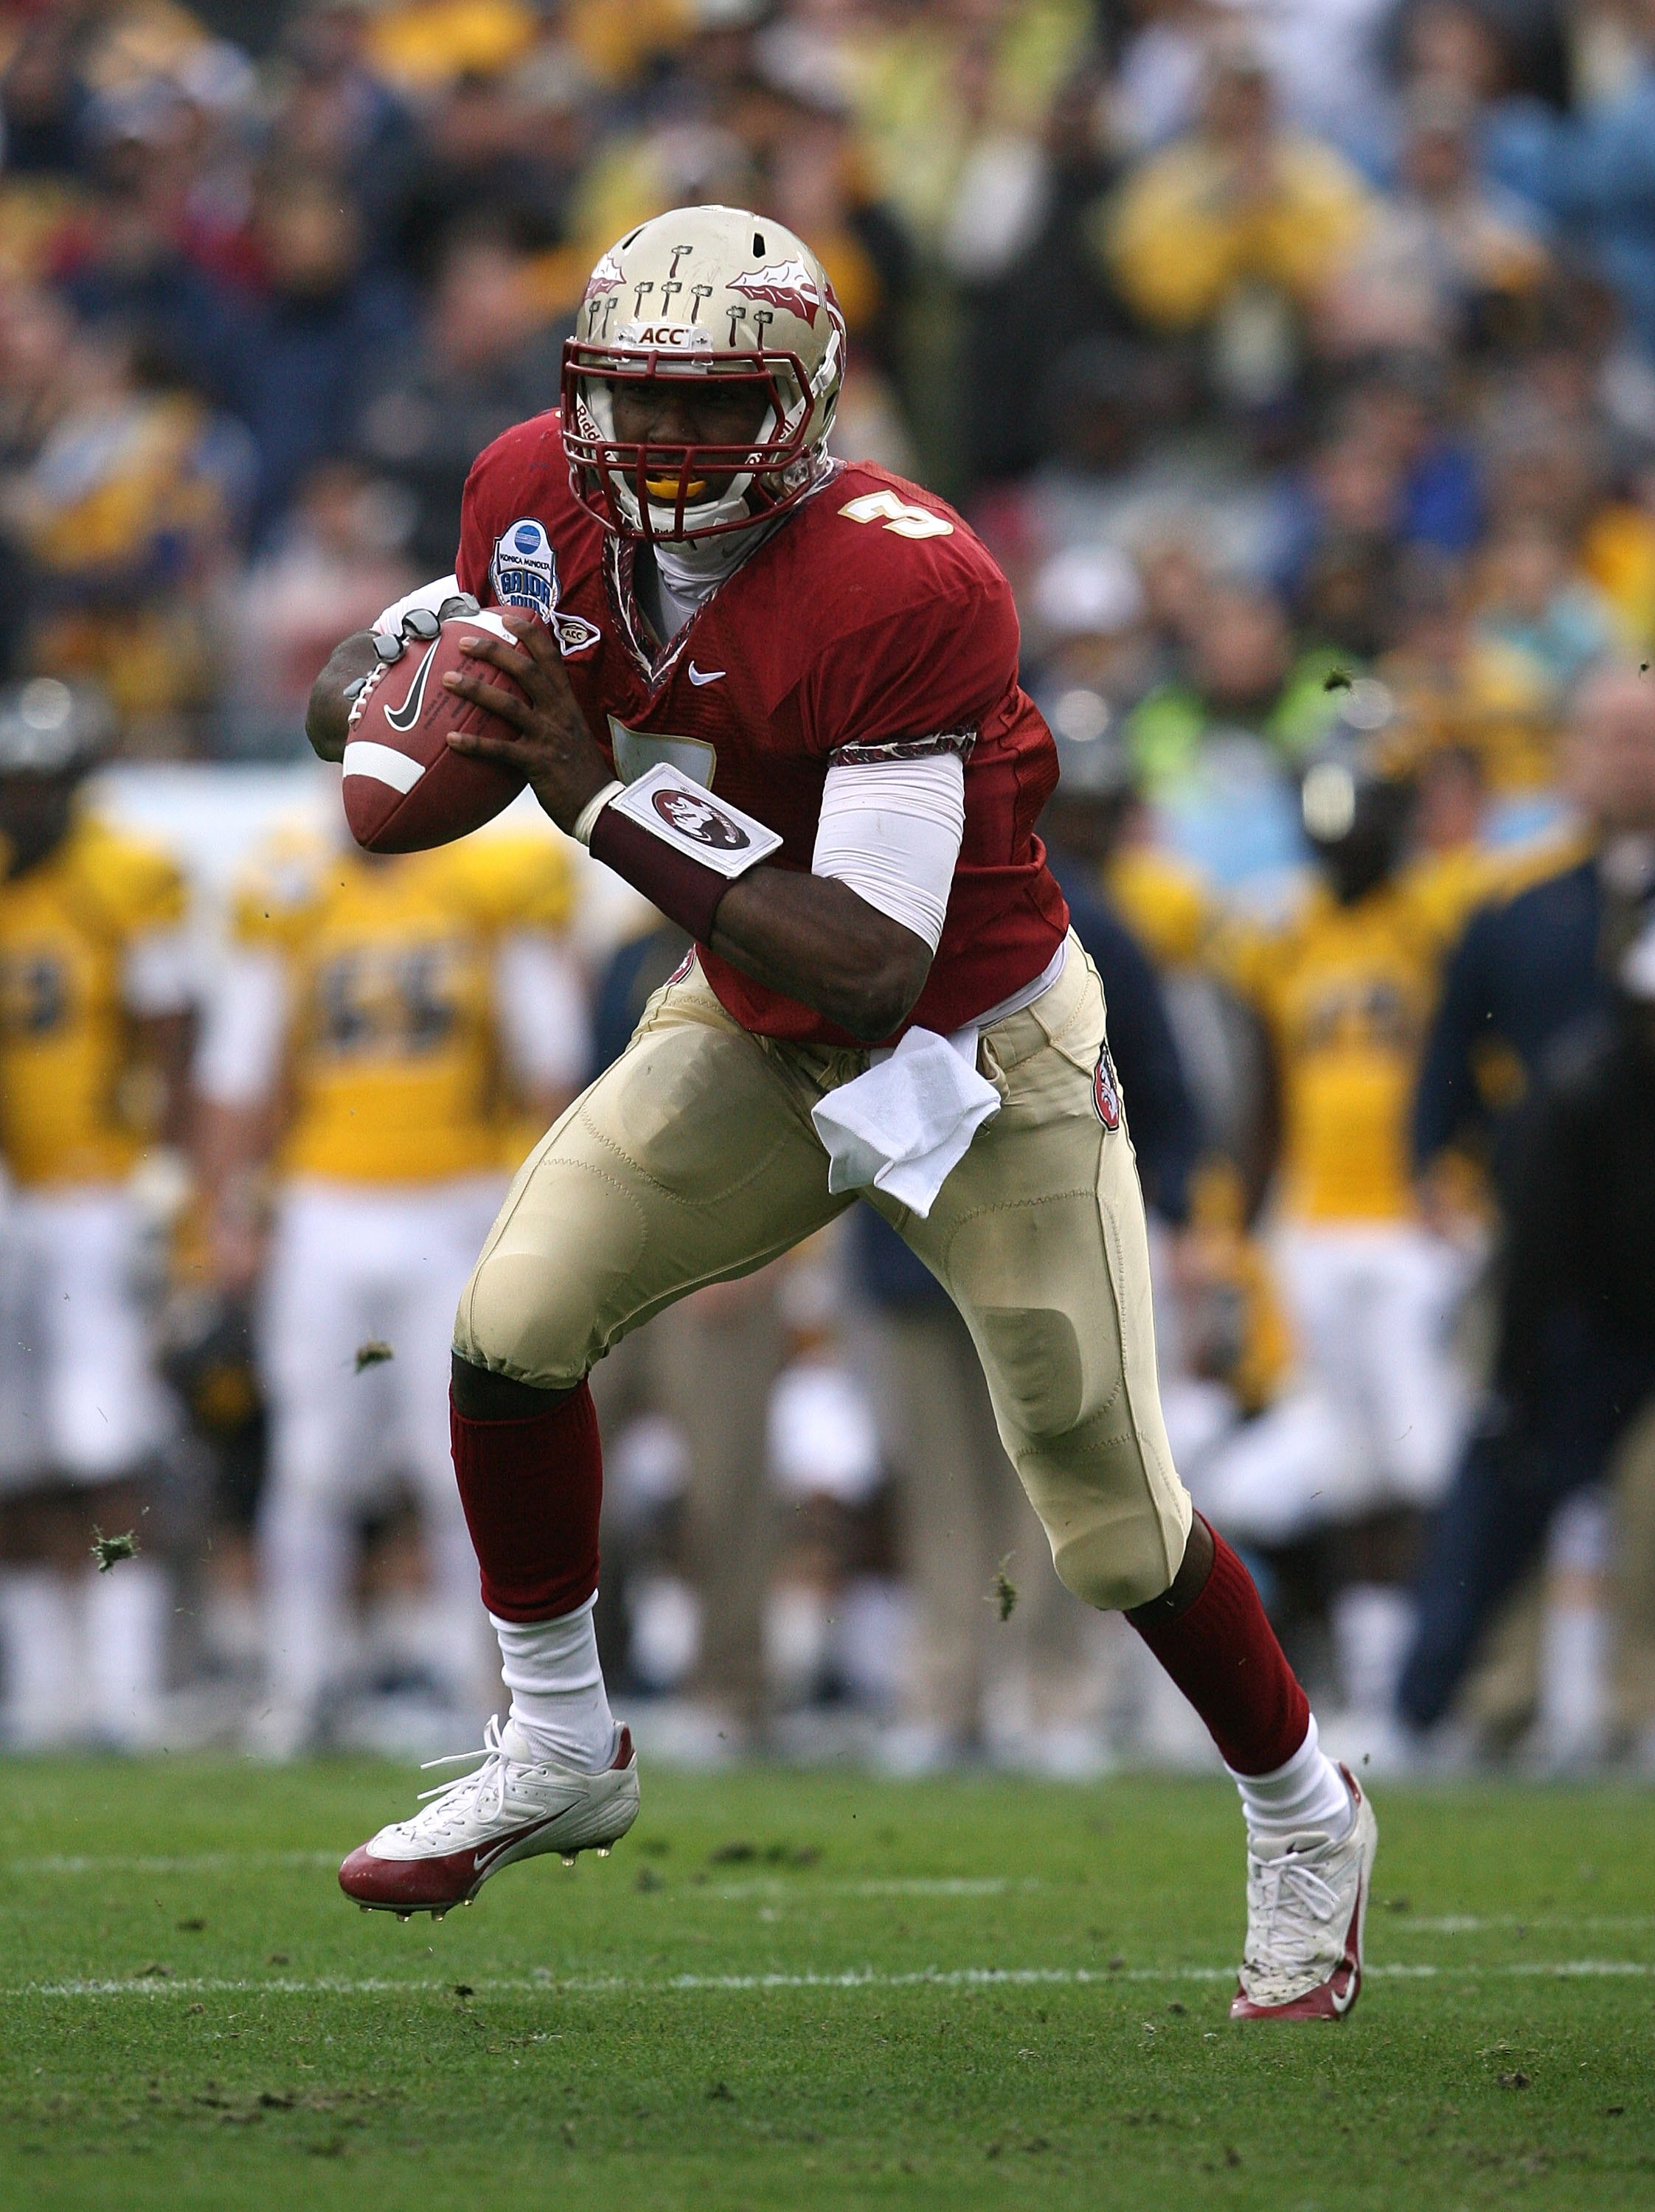 JACKSONVILLE, FL - JANUARY 01:  Quarterback E.J. Manuel #3 of the Florida State Seminoles scrambles against the West Virginia Mountaineers during the Konica Minolta Gator Bowl on January 1, 2010 at Jacksonville Municipal Stadium in Jacksonville, Florida.